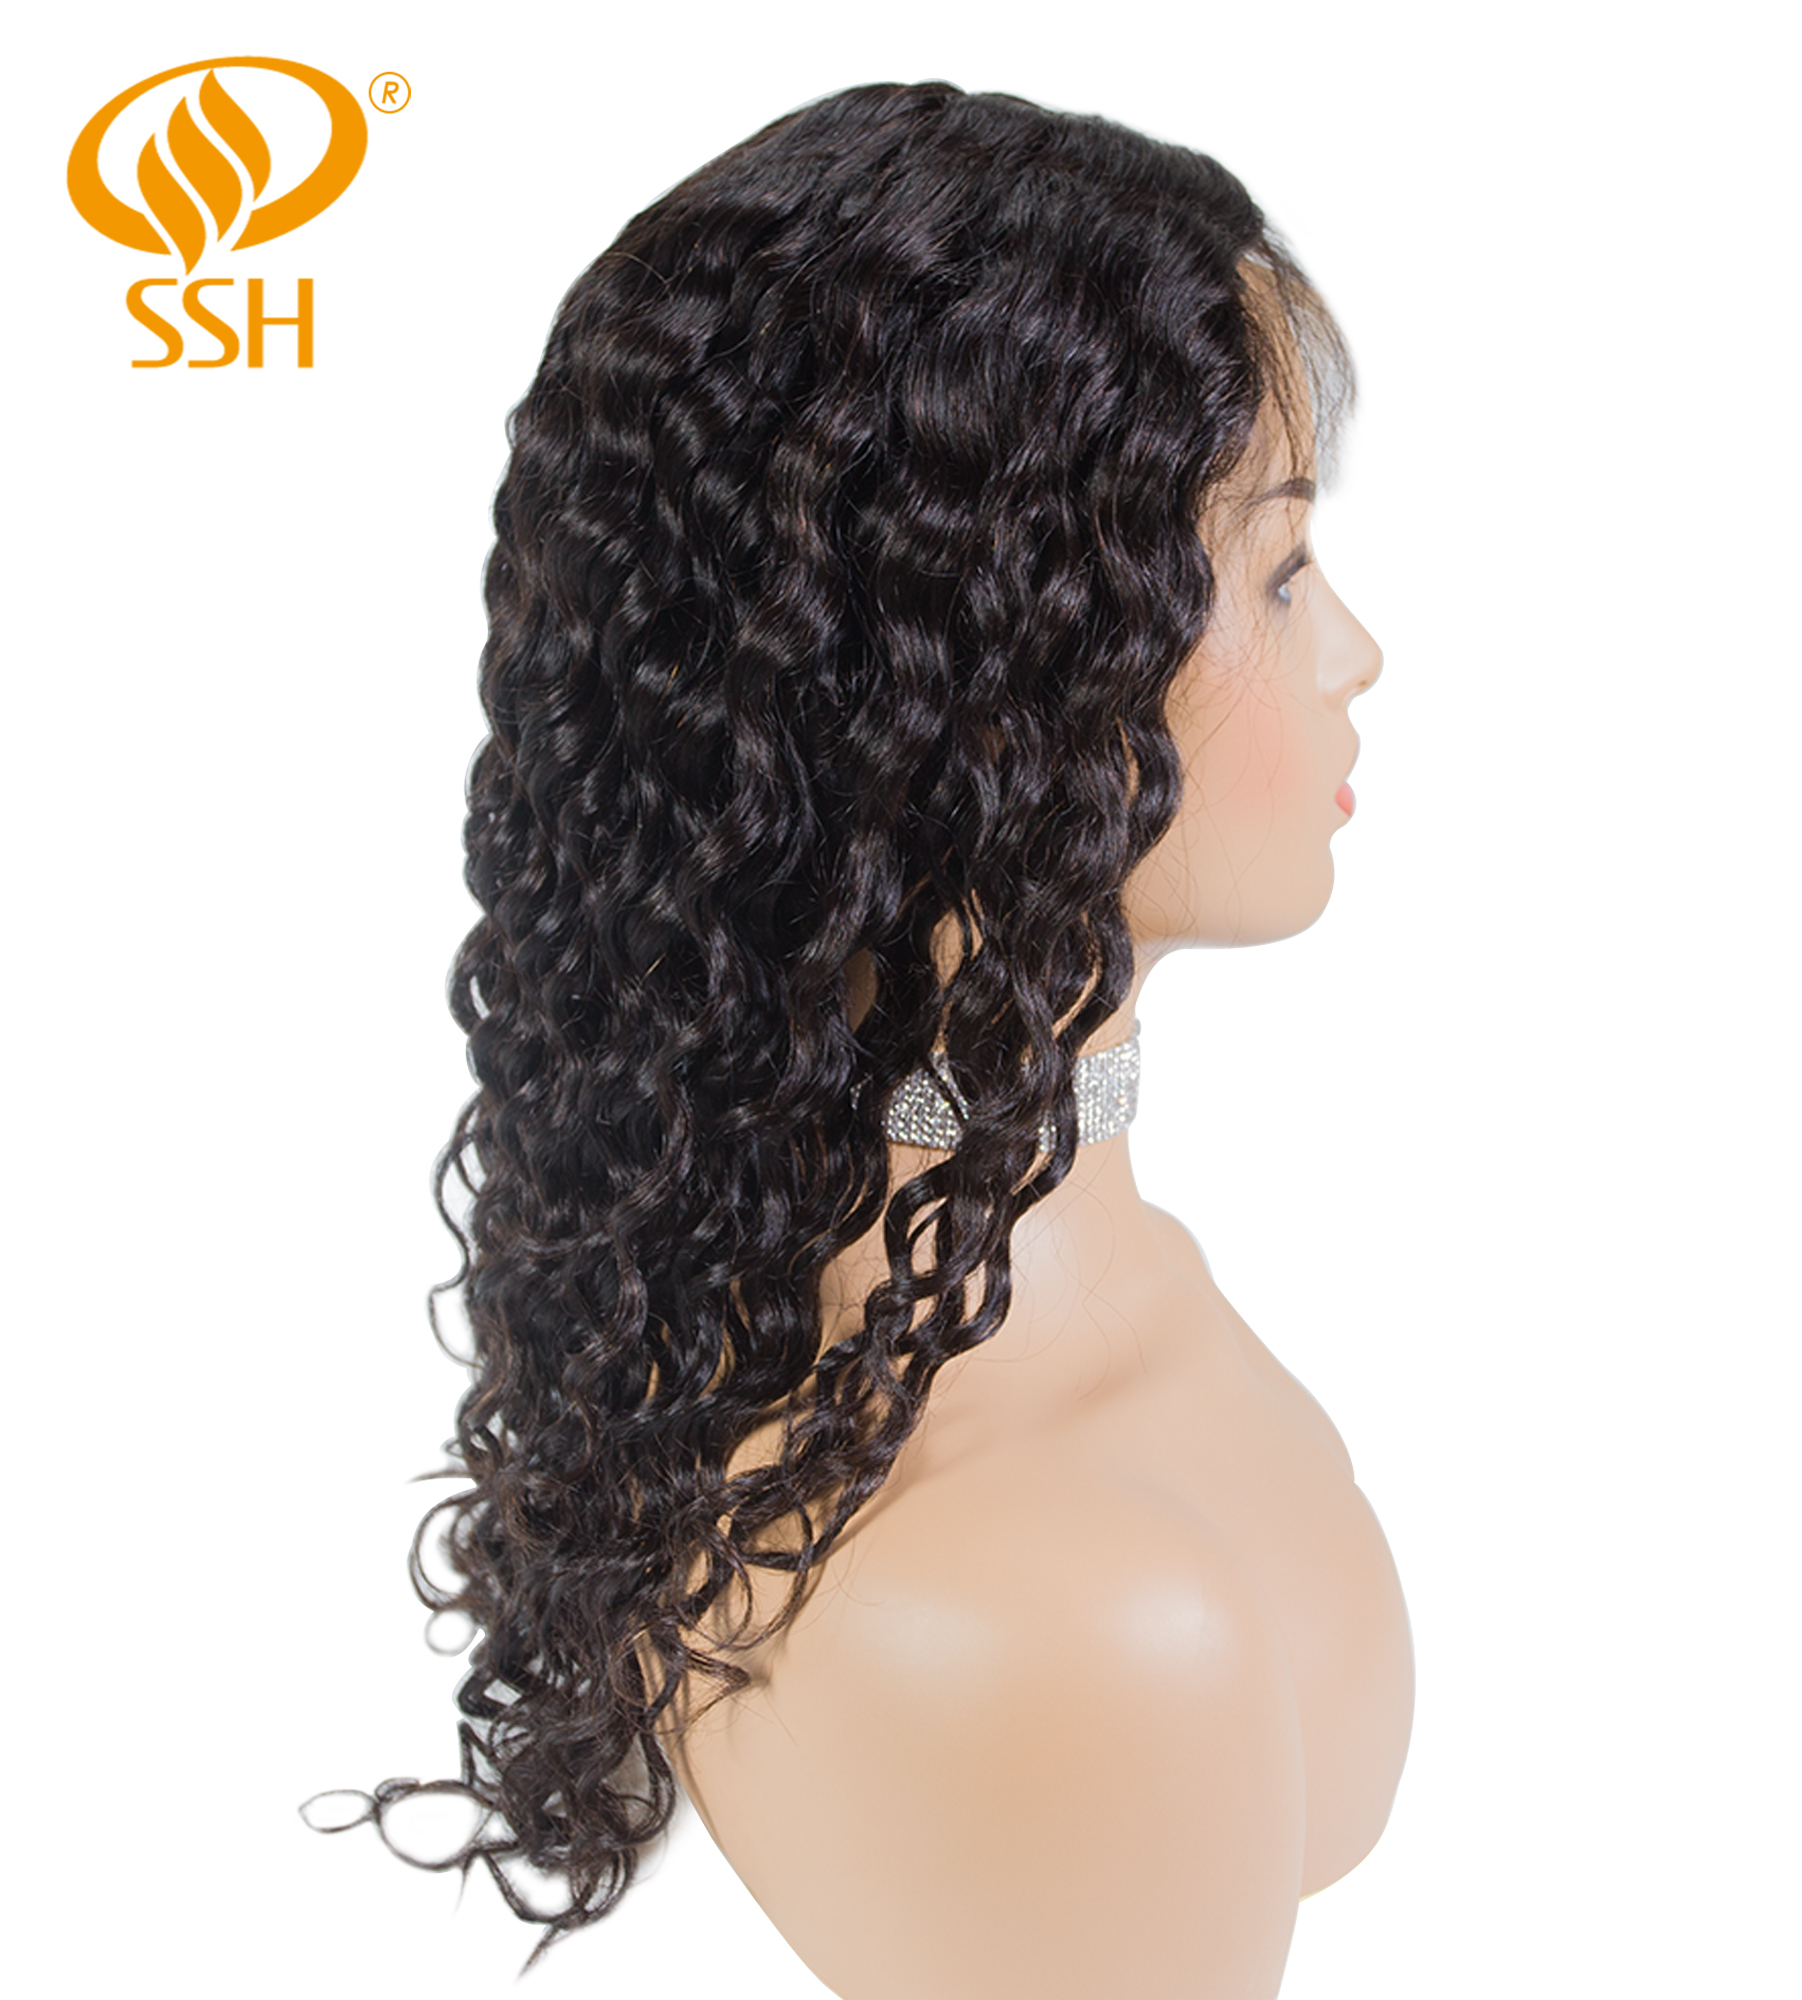 SSH Pre Plucked Remy Human Hair Wigs Brazilian Loose Wave Lace Front Wig With Baby Hair